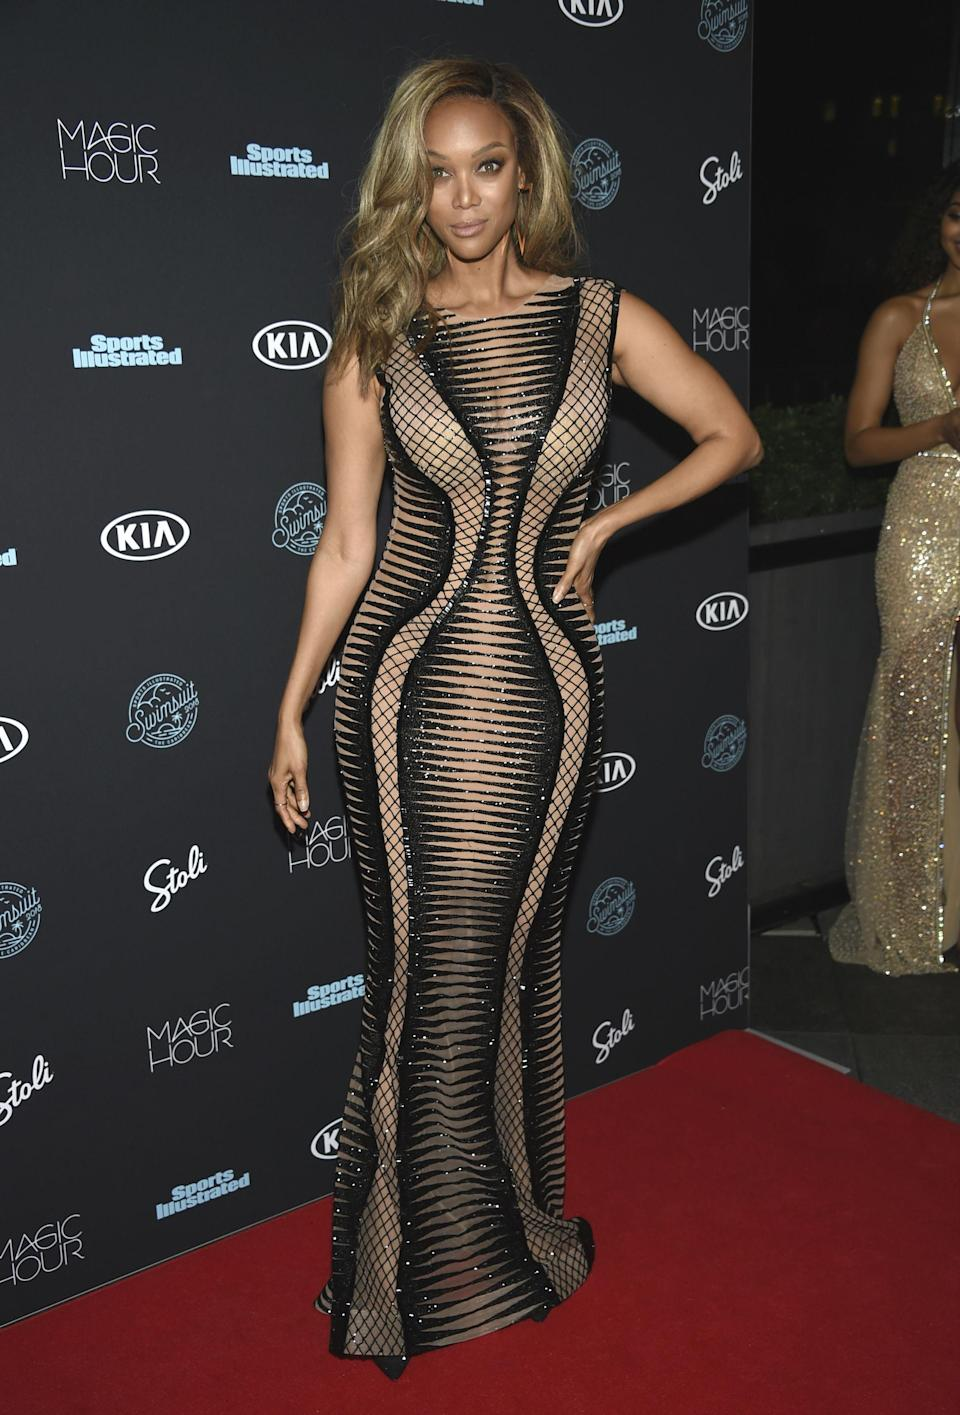 <p>Tyra Banks aún sigue teniendo un físico envidiable a sus 44 años y nos lo demostró en la <em>red carpet</em> de Sports Illustrated. (Foto: AP). </p>